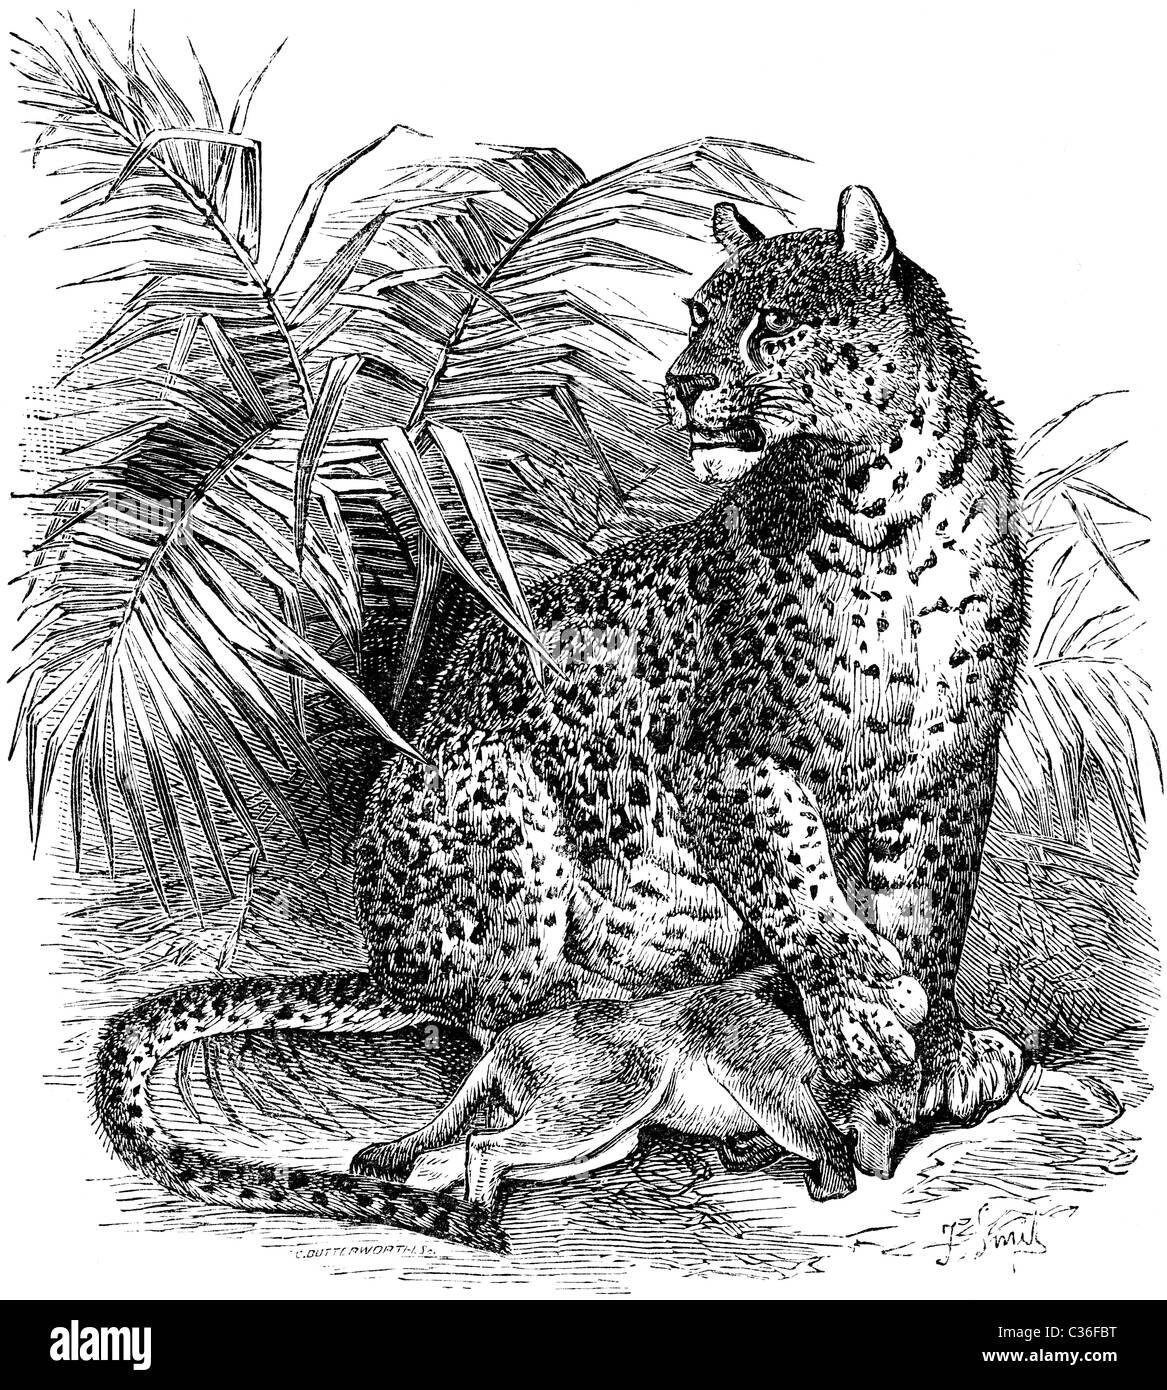 19th Century book illustration, taken from 9th edition (1875) of Encyclopaedia Britannica, of Leopard - Stock Image